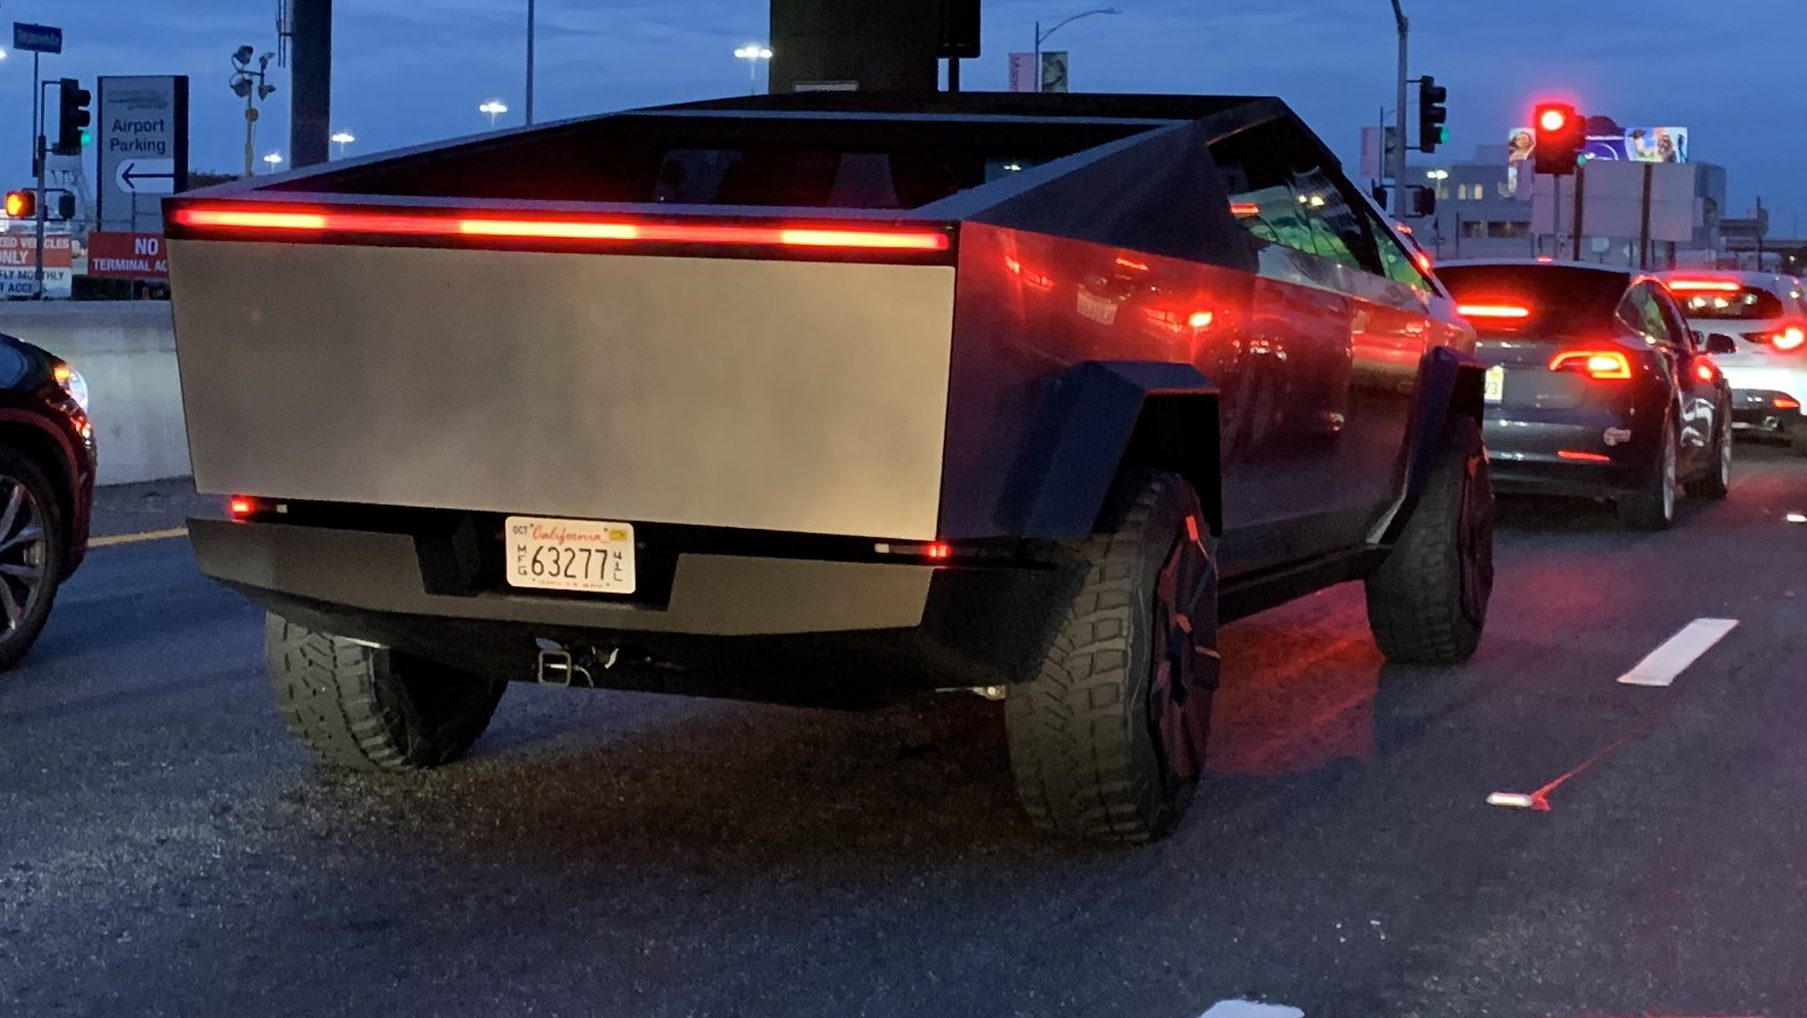 Tesla Cybertruck with Tow Hitch Exposed